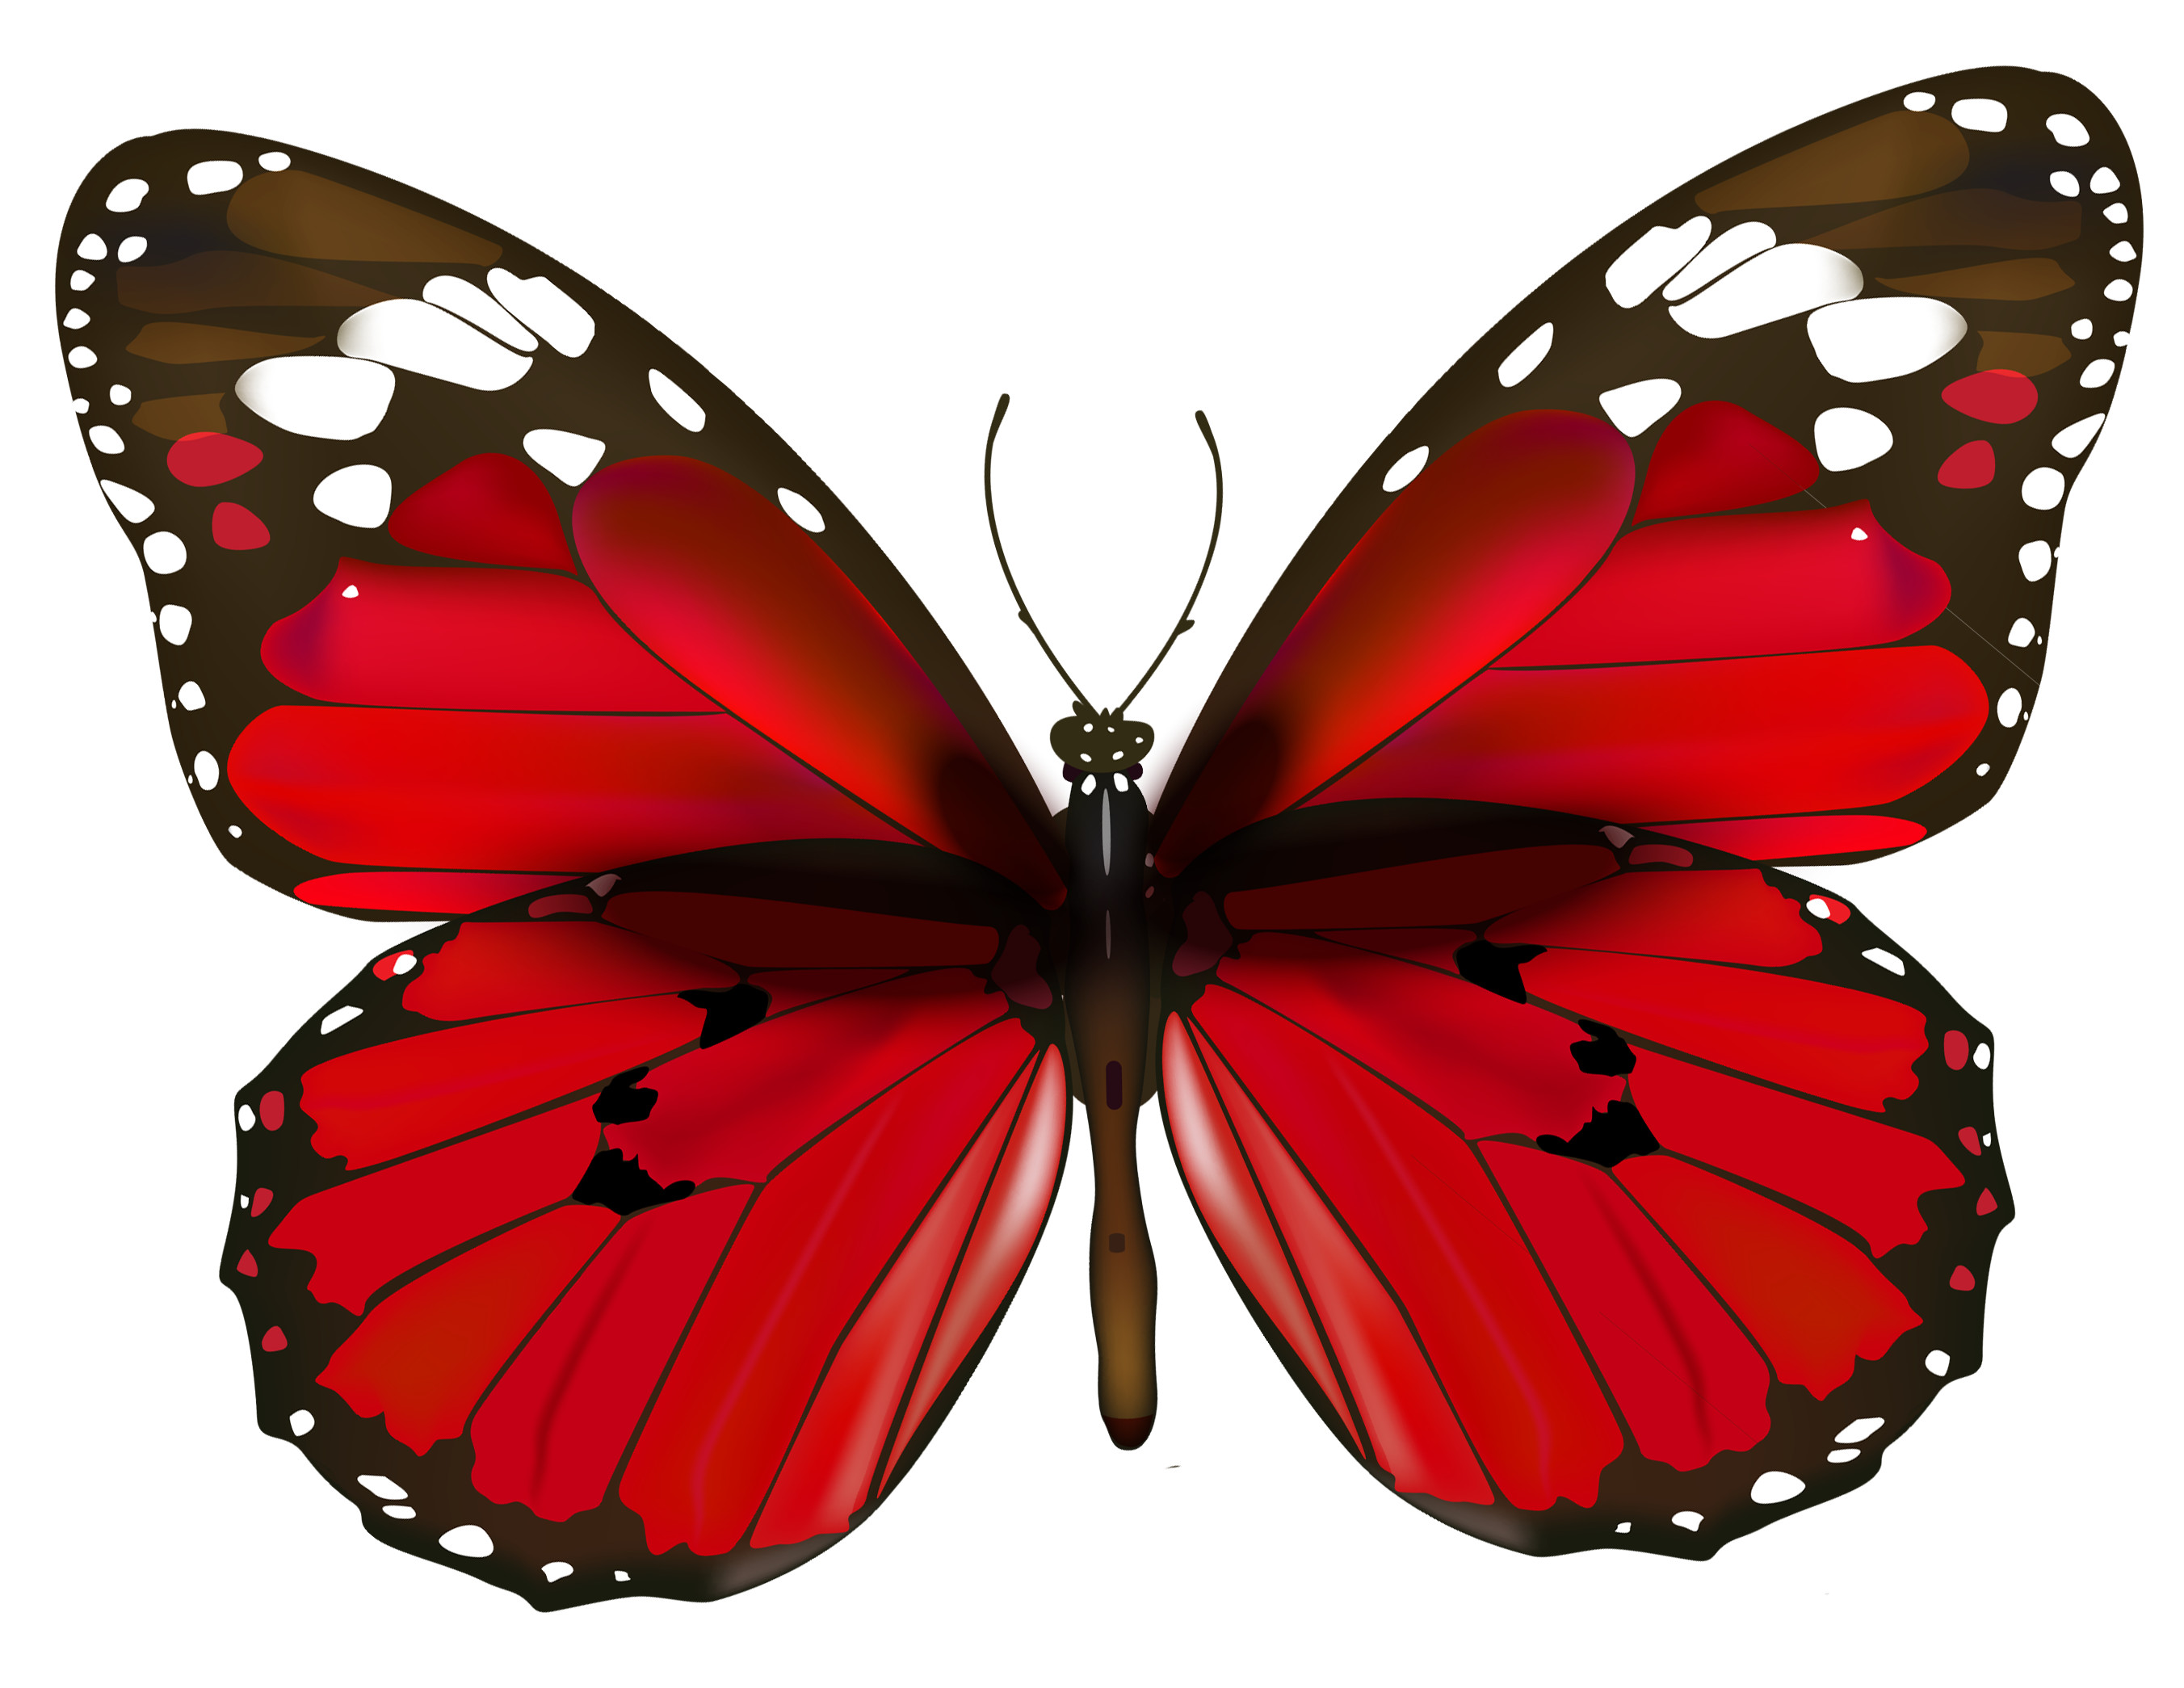 Res: 2704x2090, Free Red Butterfly Cliparts, Download Free Clip Art, Free Clip Art on  Clipart Library